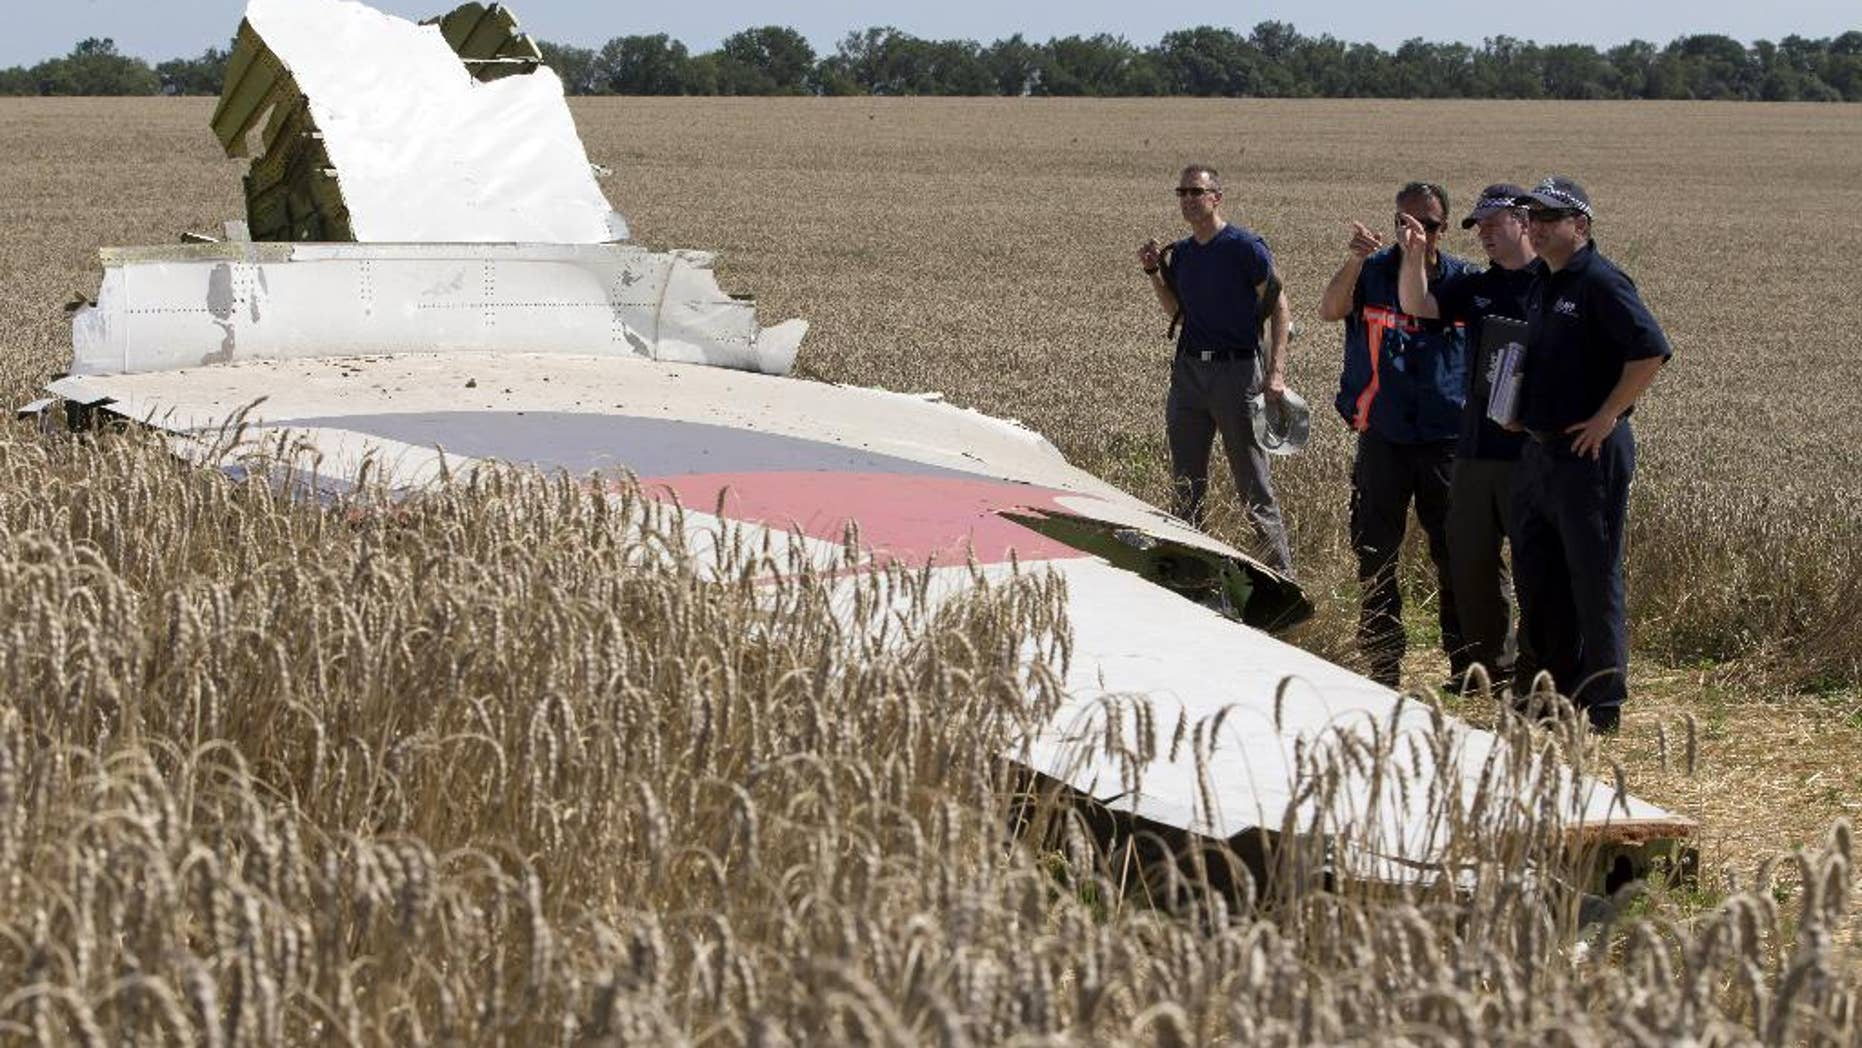 FILE - This Aug. 1, 2014 file photo shows investigators examining a piece of the Malaysia Airlines Flight 17 plane crash near the village of Hrabove, Donetsk region, eastern Ukraine. U.S. and international pilot unions are pressing the Obama administration and global aviation officials to get intelligence to airlines faster on potential threats to civil aviation from hostilities around the world following last month's shoot down of an airliner carrying nearly 300 people.  (AP Photo/Dmitry Lovetsky, File)